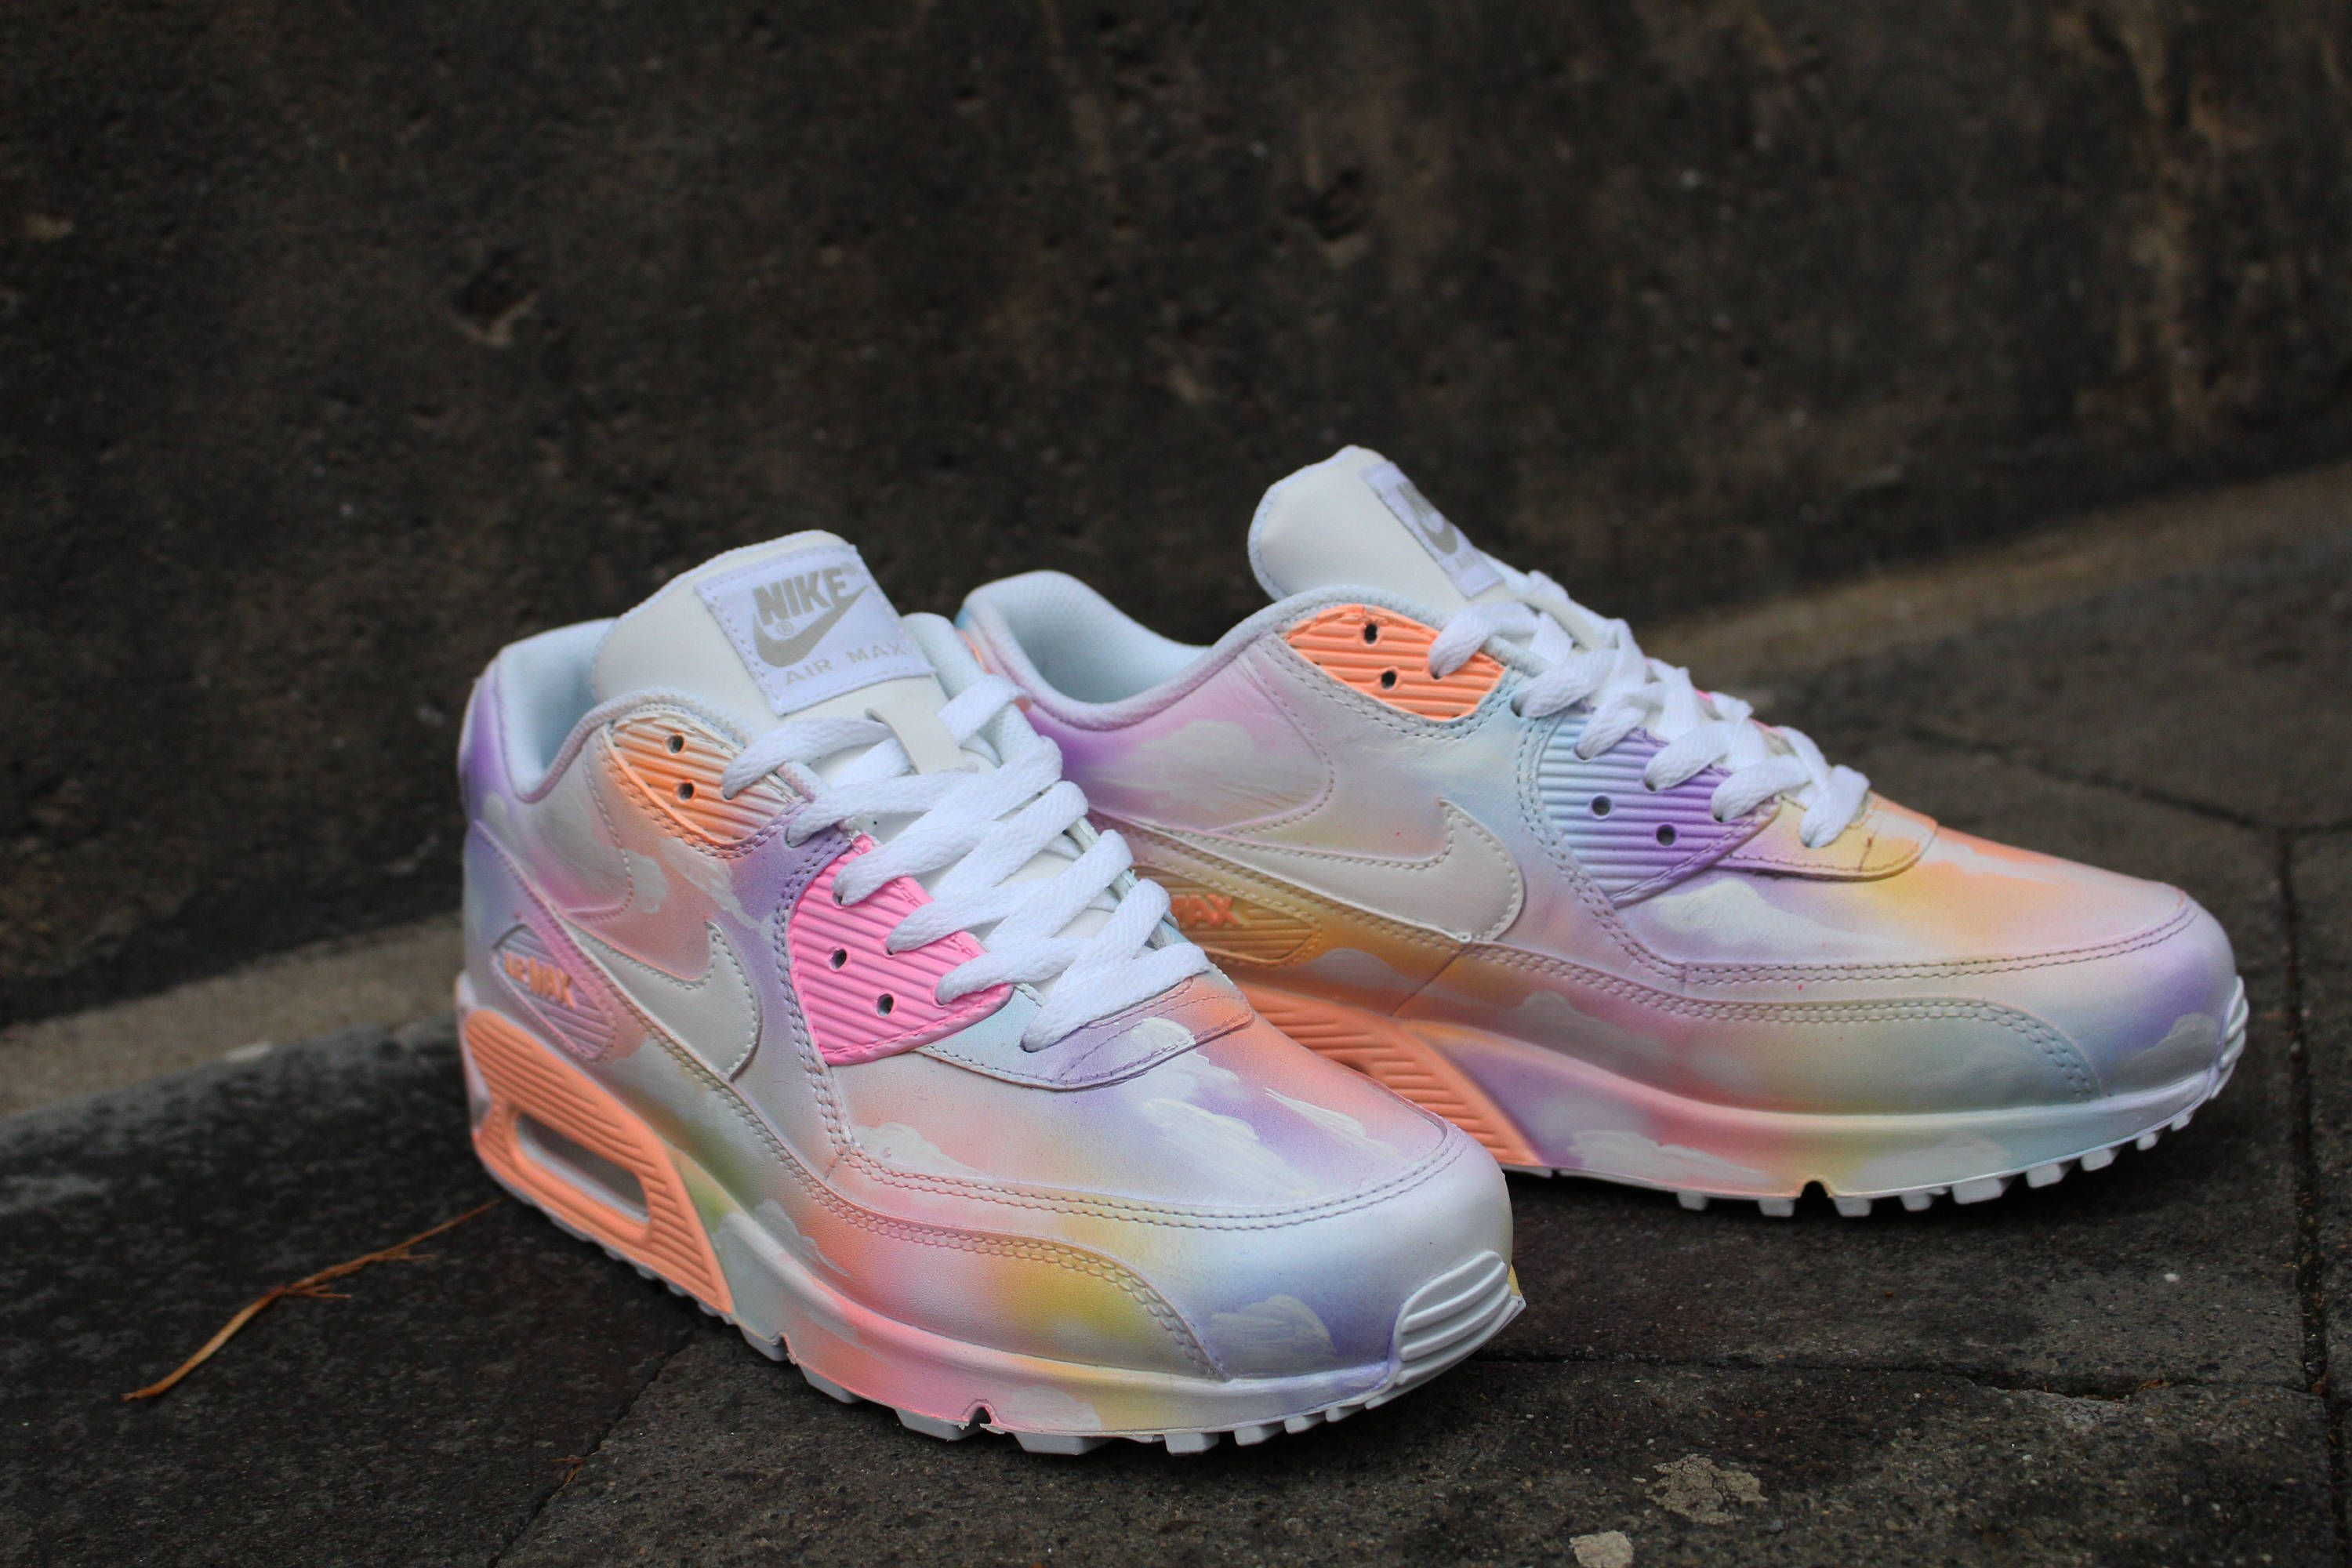 quality design 571c2 49b9d Custom painted Nike Air Max 90 Cloudy pastell Dream Art Style   Etsy Air  Max 90